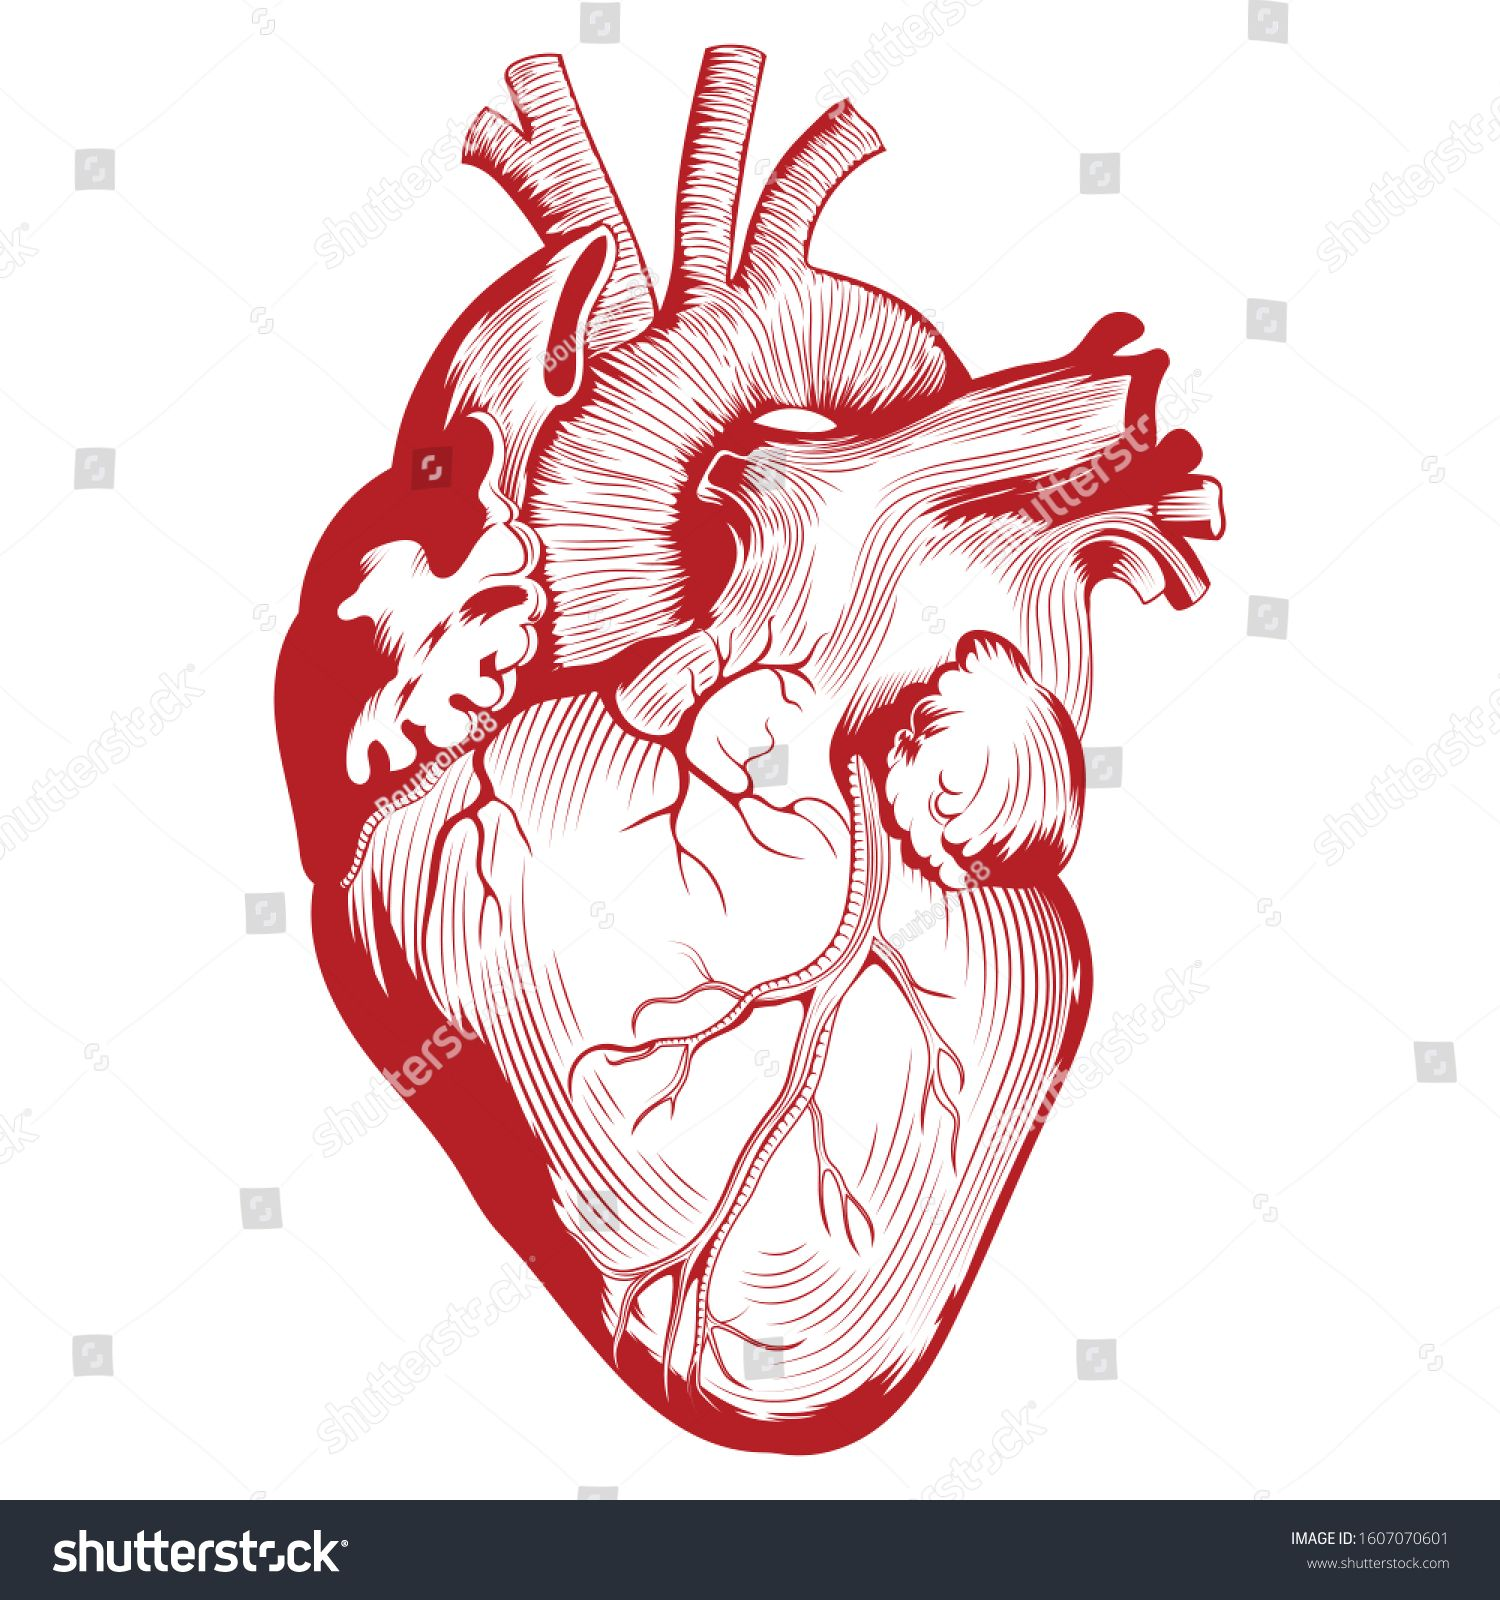 Vector Free Buckle Cartoon Heart Human Heart Heart Cells Png And Vector With Transparent Background For Free Download Cartoon Heart Cartoon Clip Art Vector Free